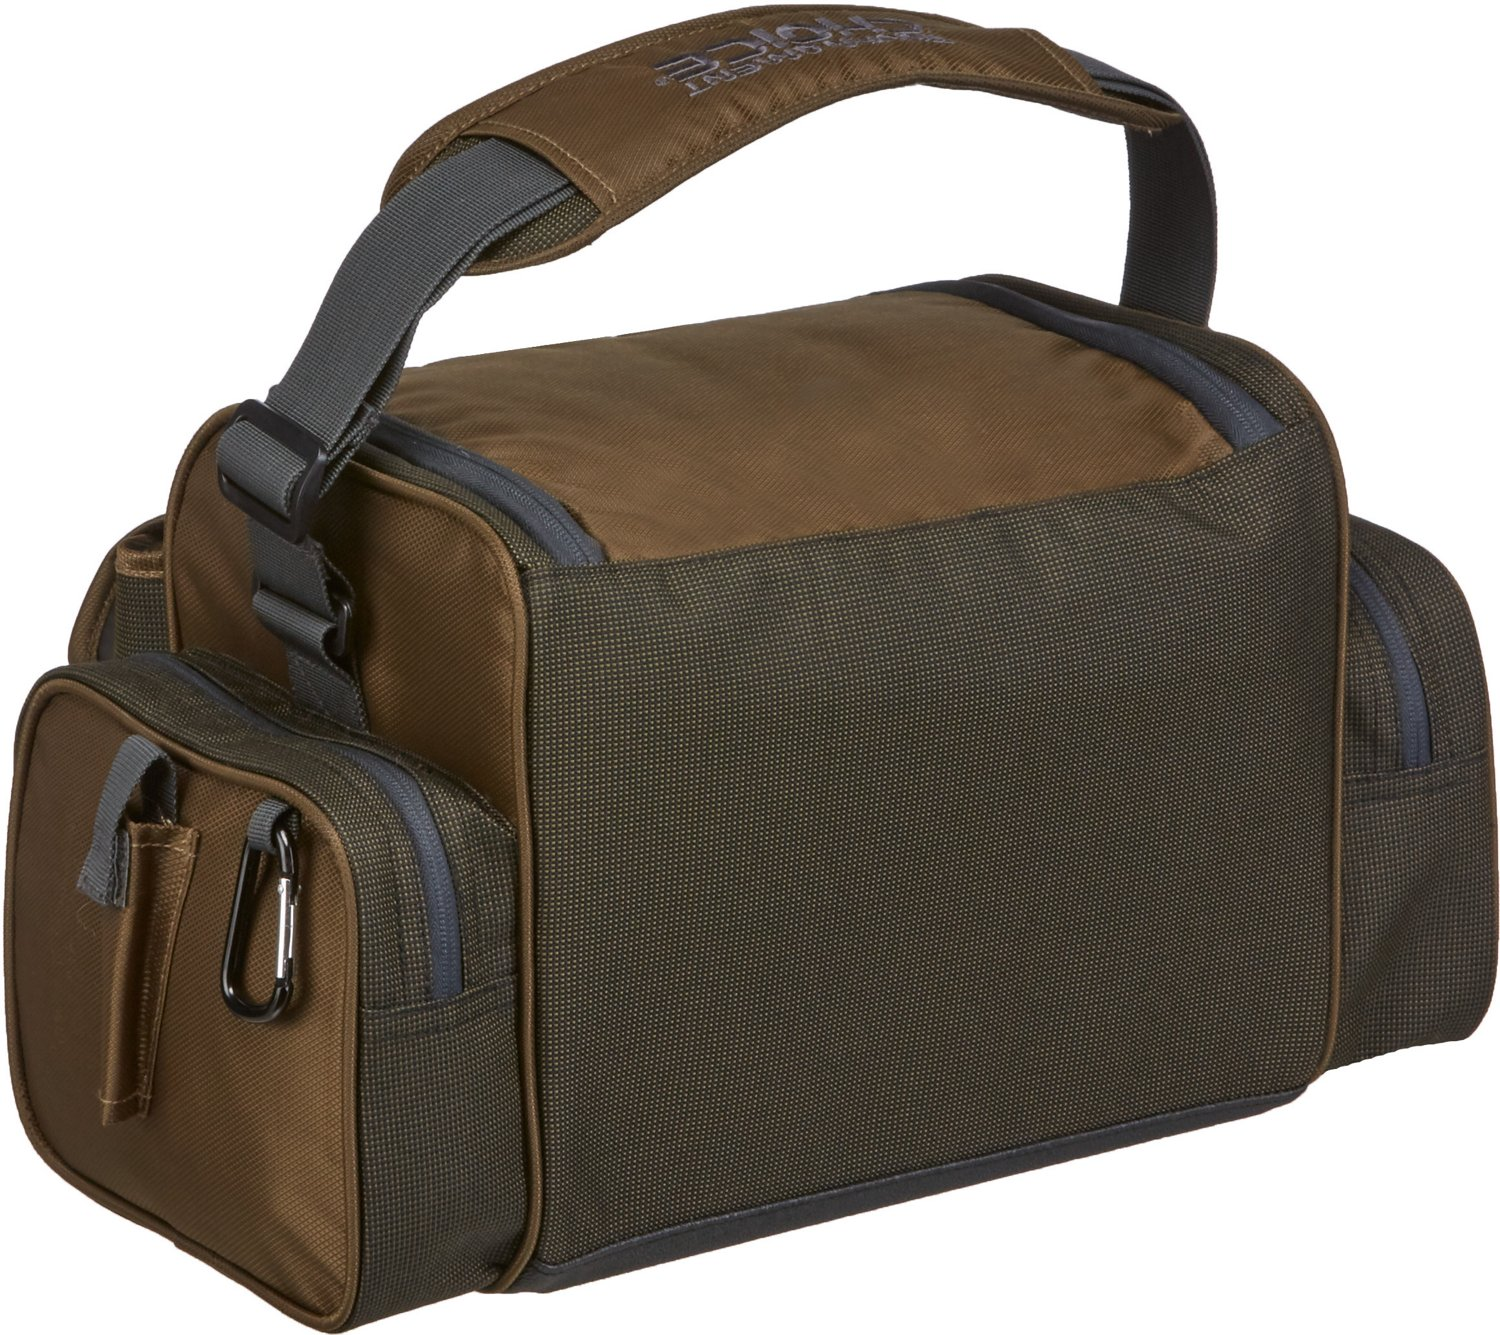 Tournament Choice® Outdoor Gear Bag - view number 1